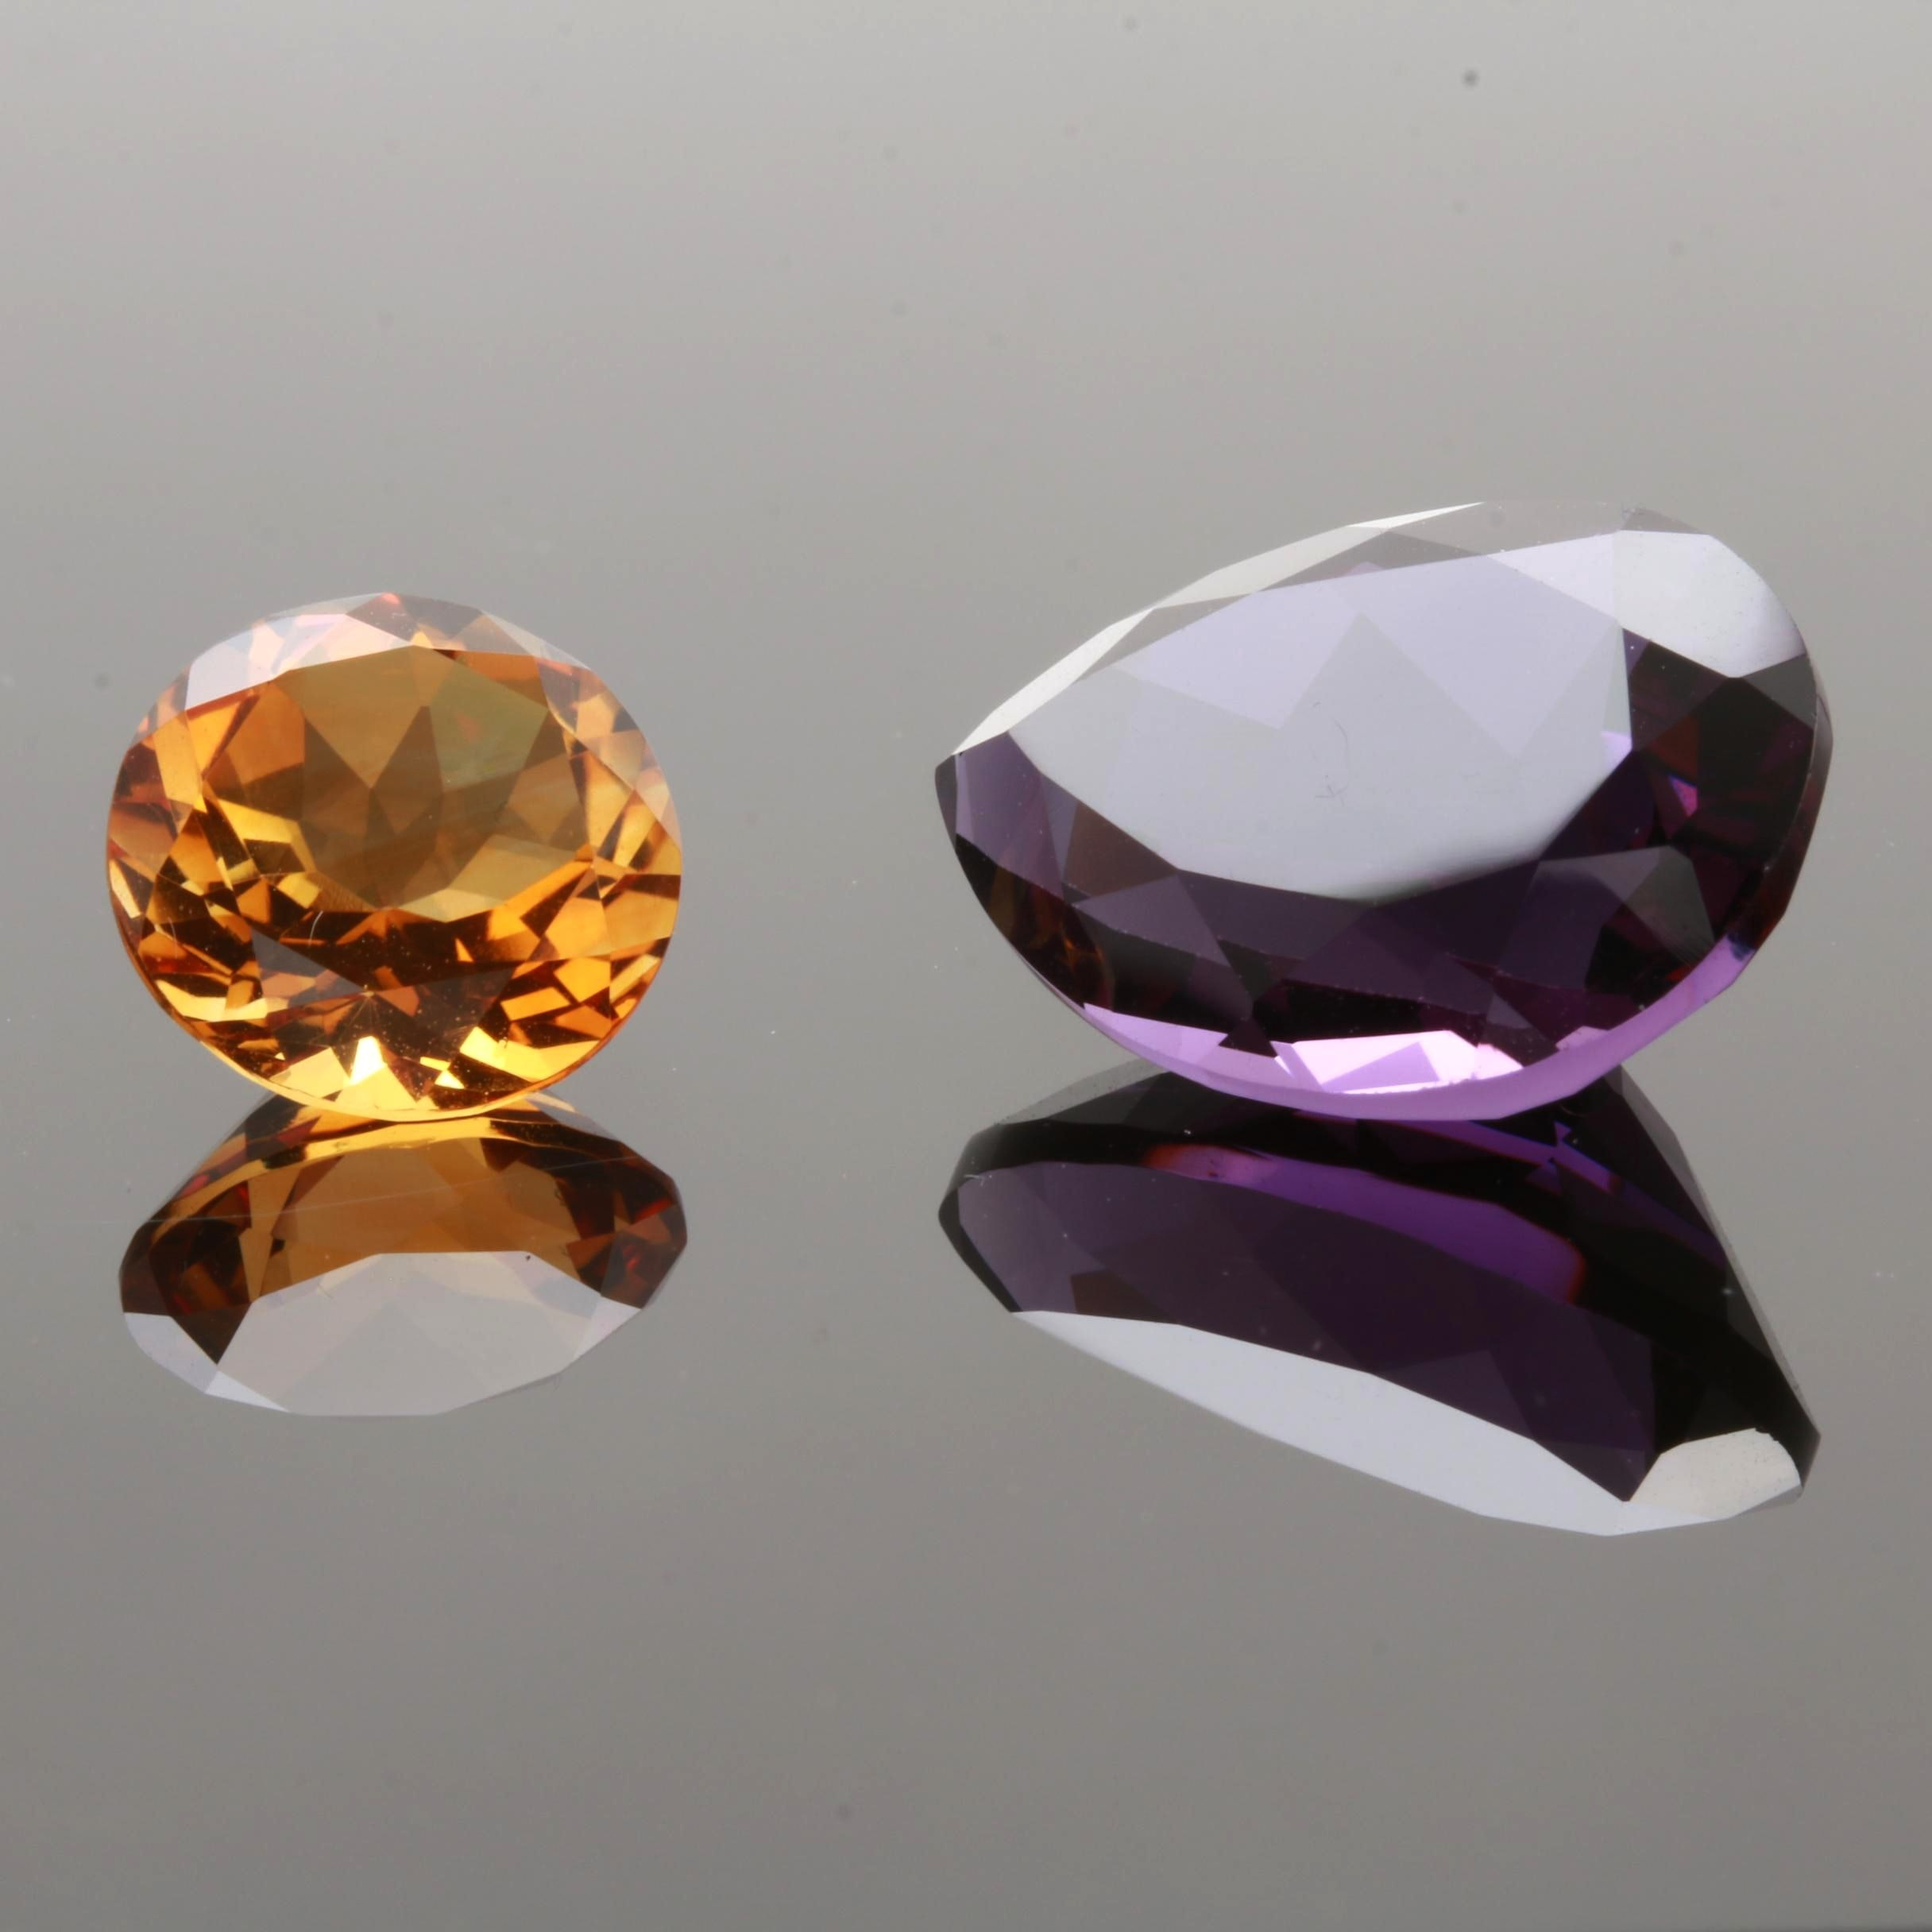 Loose 5.67 CT Citrine and Loose 15.59 CT Amethyst